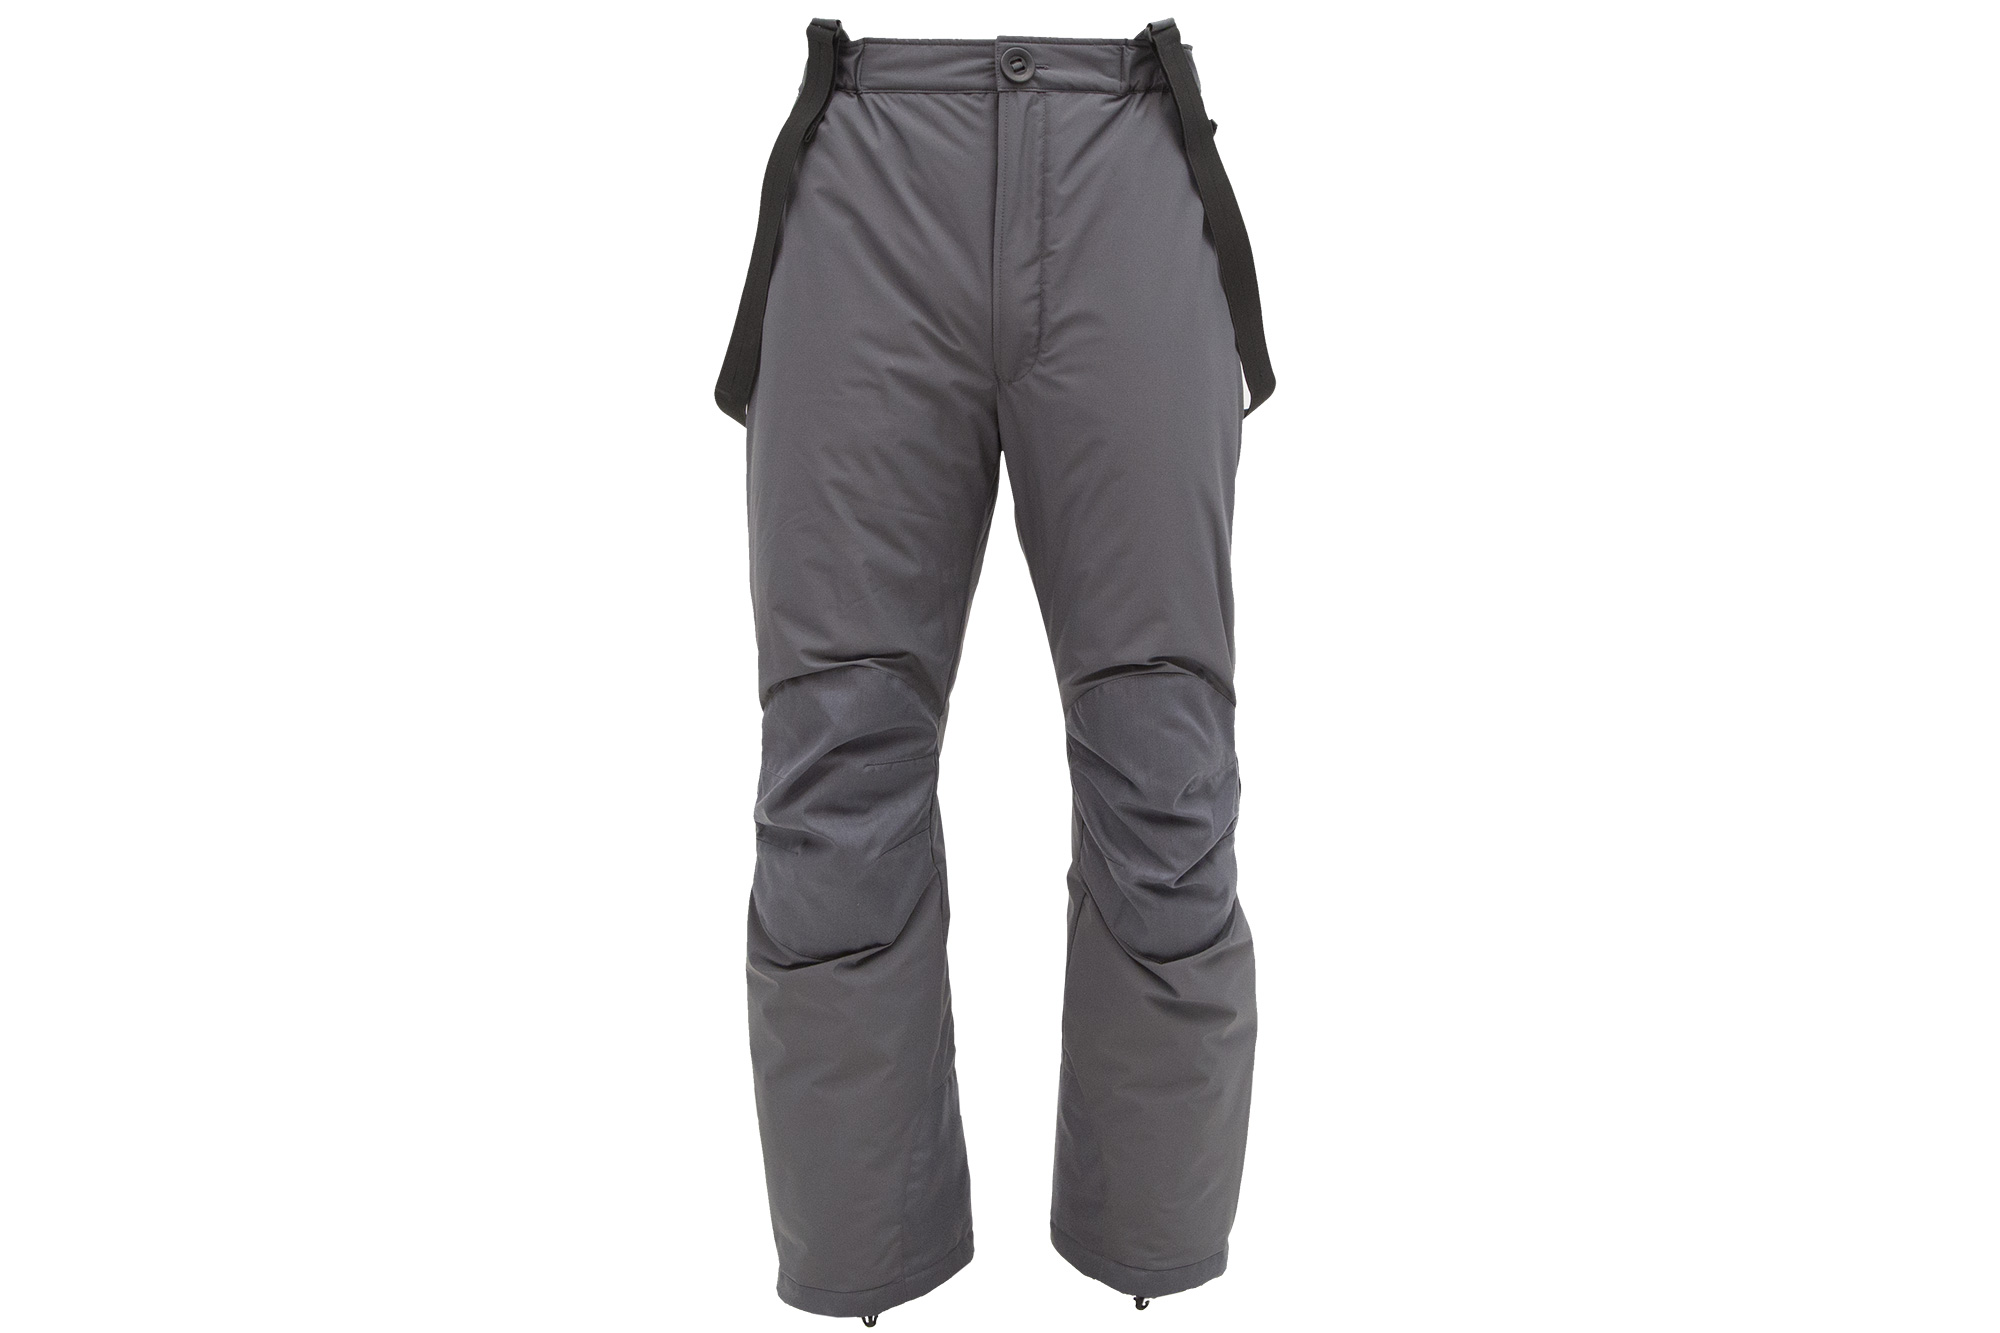 http://www.softair.ch/shop/bilder/REALSTEEL/CARINTHIA/TROUSERS/CAR-HIG30-TROUSES-GY_01.jpg